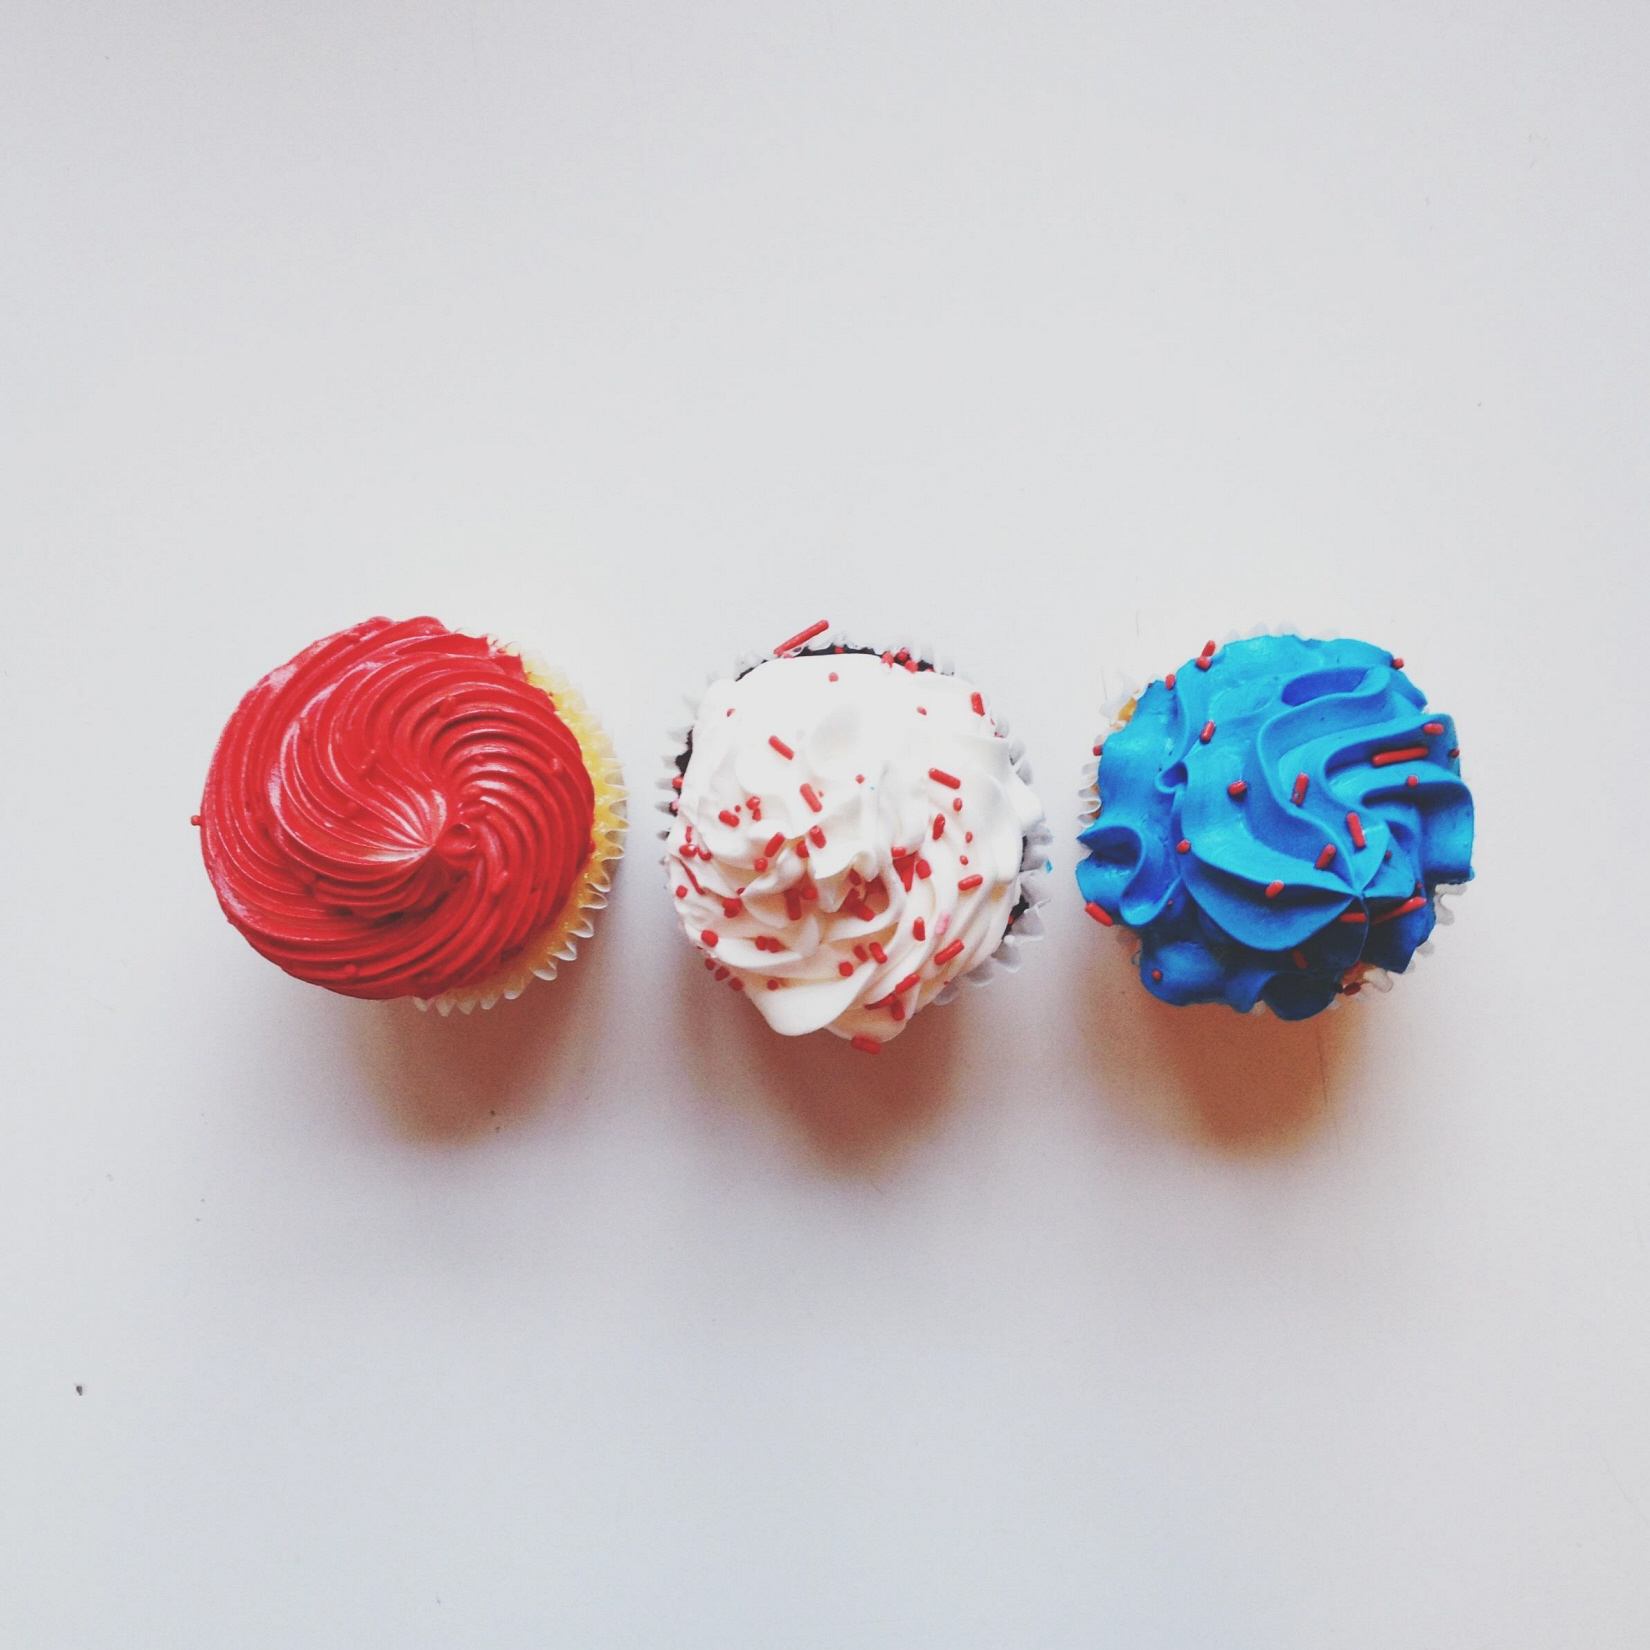 Three cupcakes decorated with red white and blue whipped cream